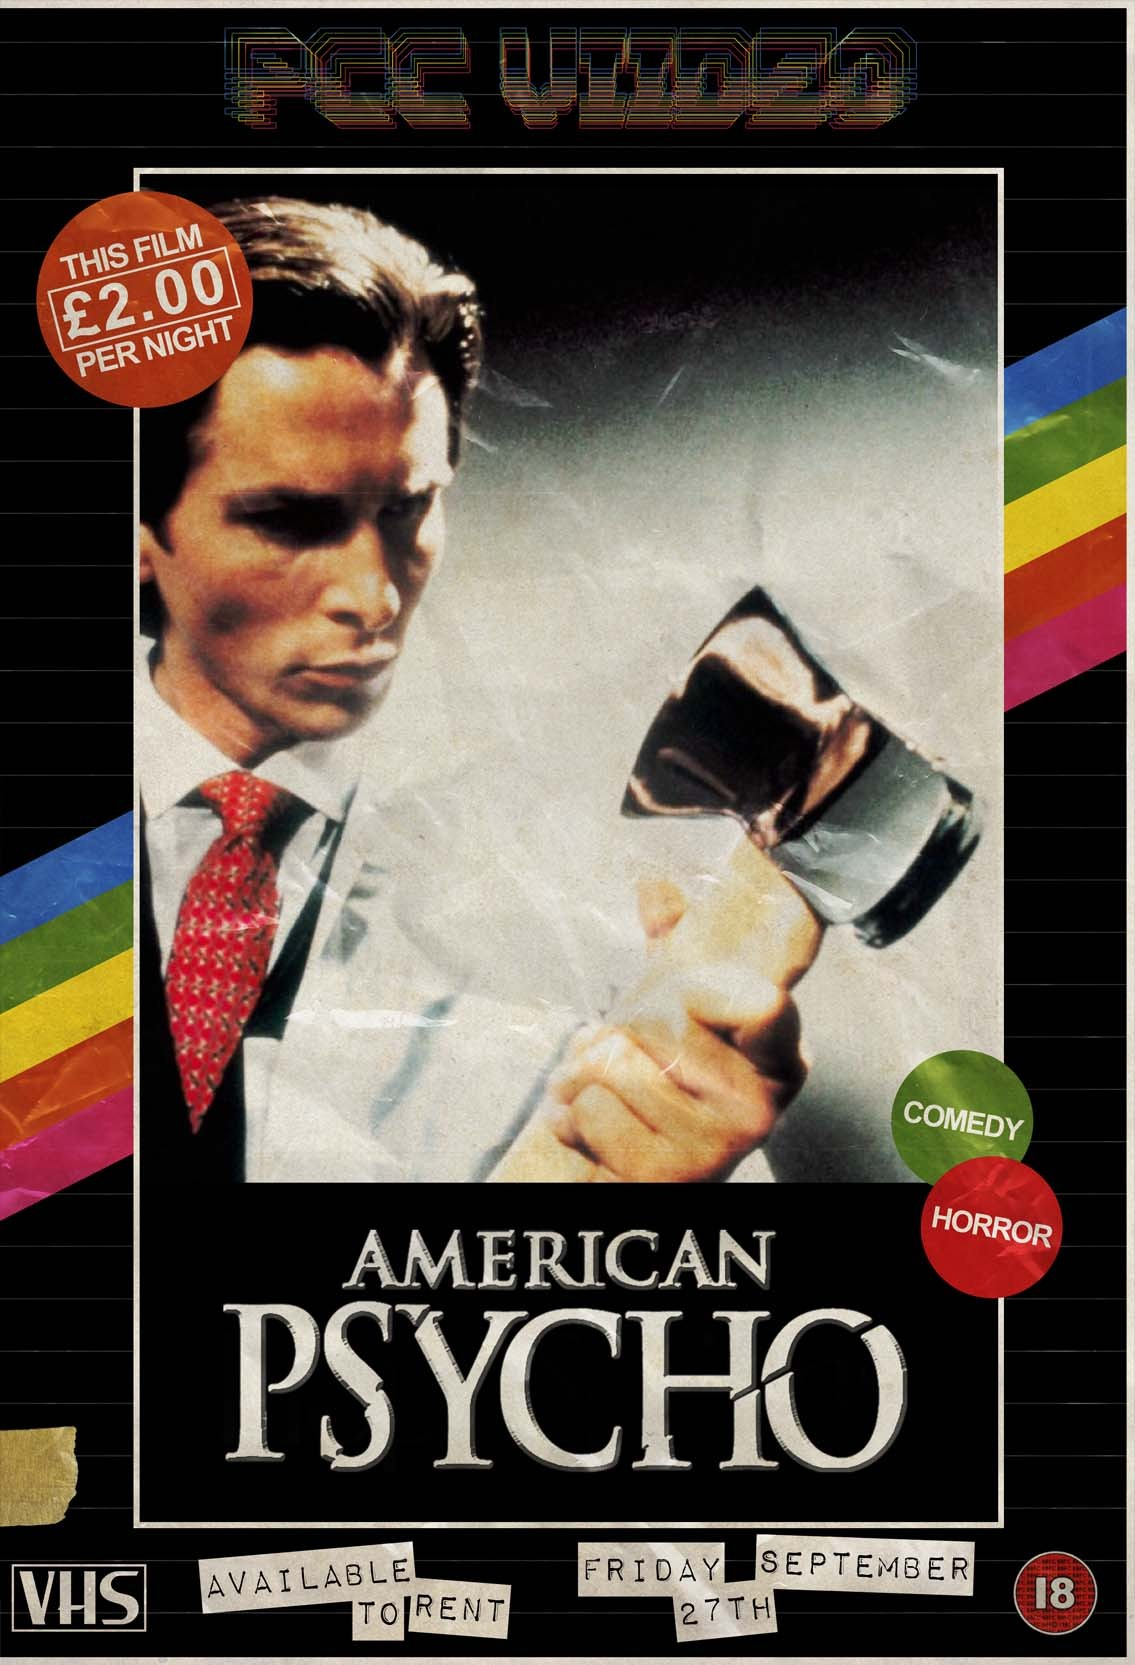 AMERICAN PSYCHO [Week Long Engagement]